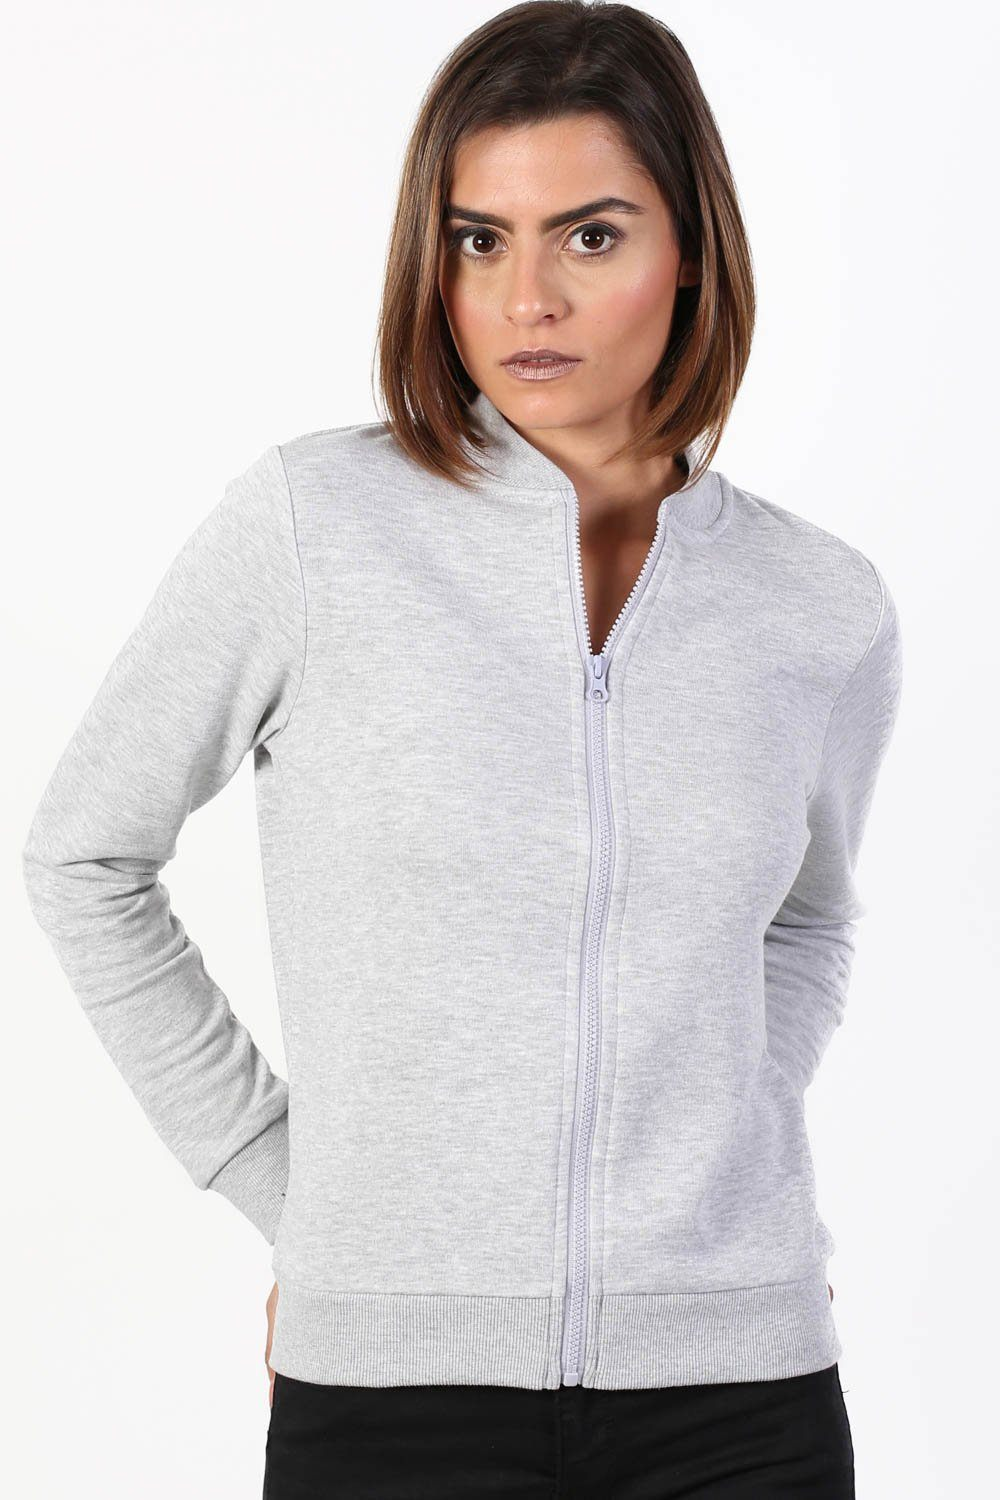 Plain Zip Front Long Sleeve Jogger Top in Grey 1